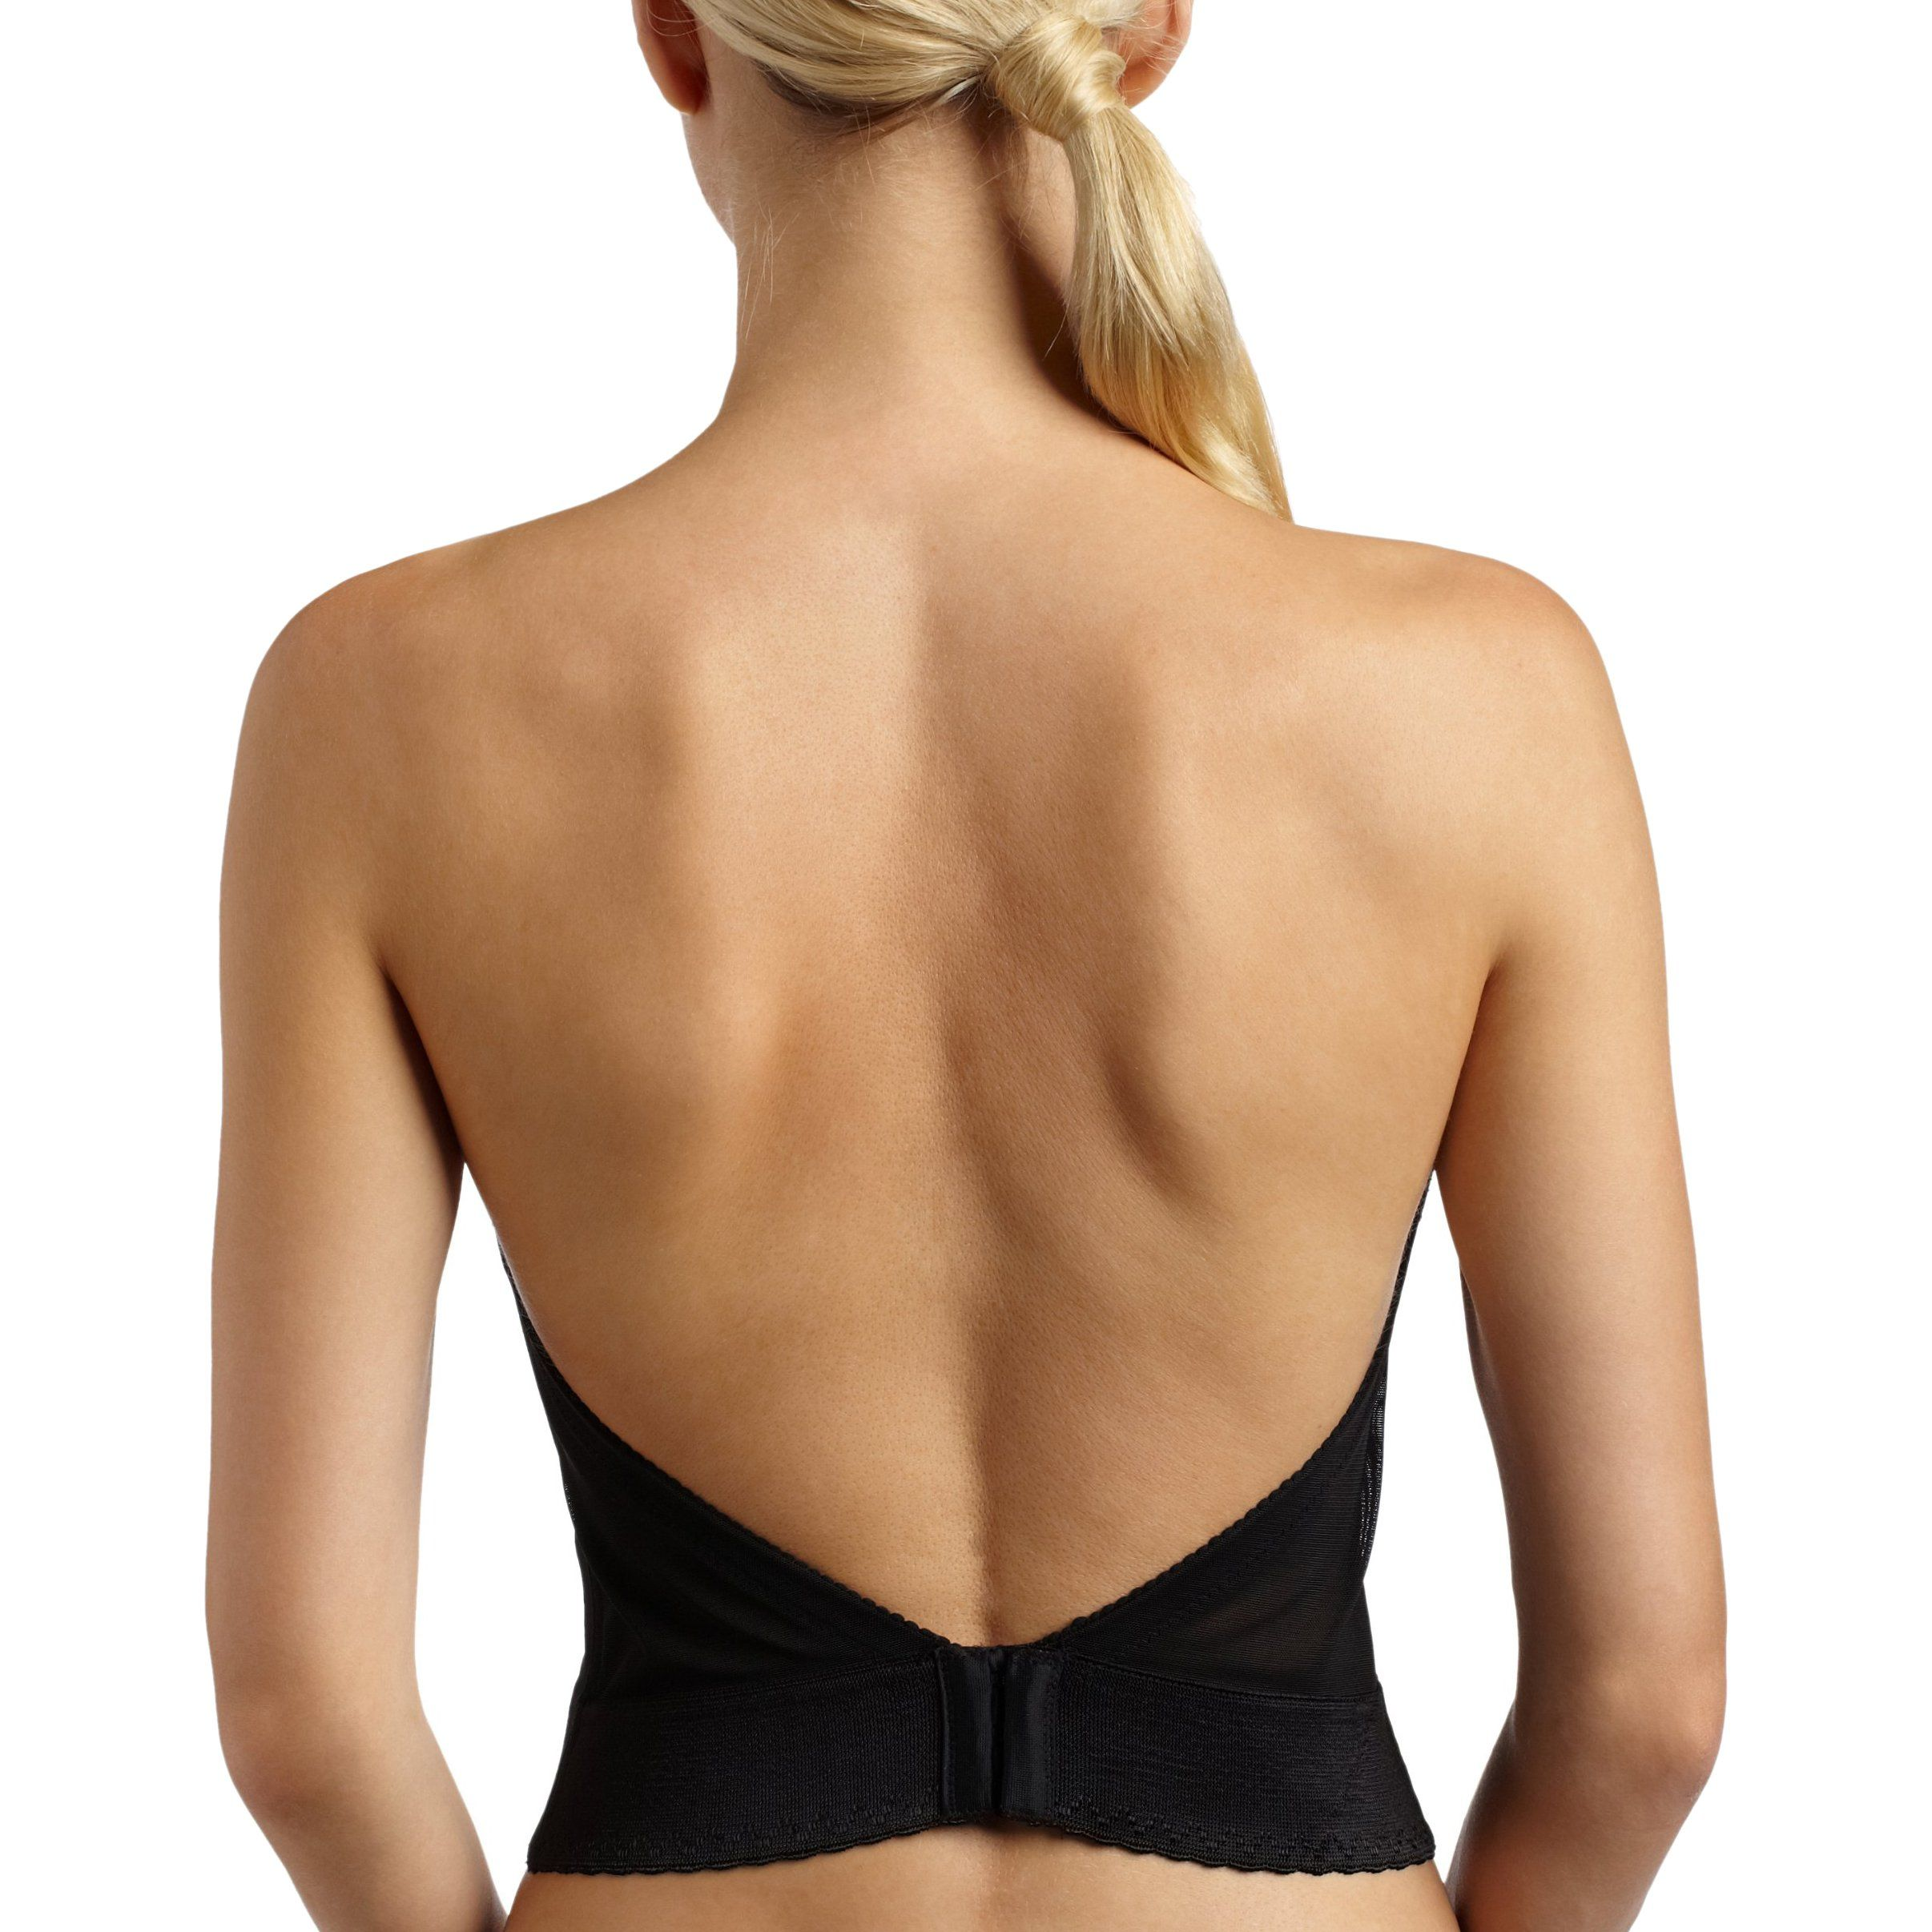 2e4ffbb676 Carnival Women s Invisible Plunge Longline - Amazon -- I searched  everywhere for a low-back or clear back bra for a holiday dress.